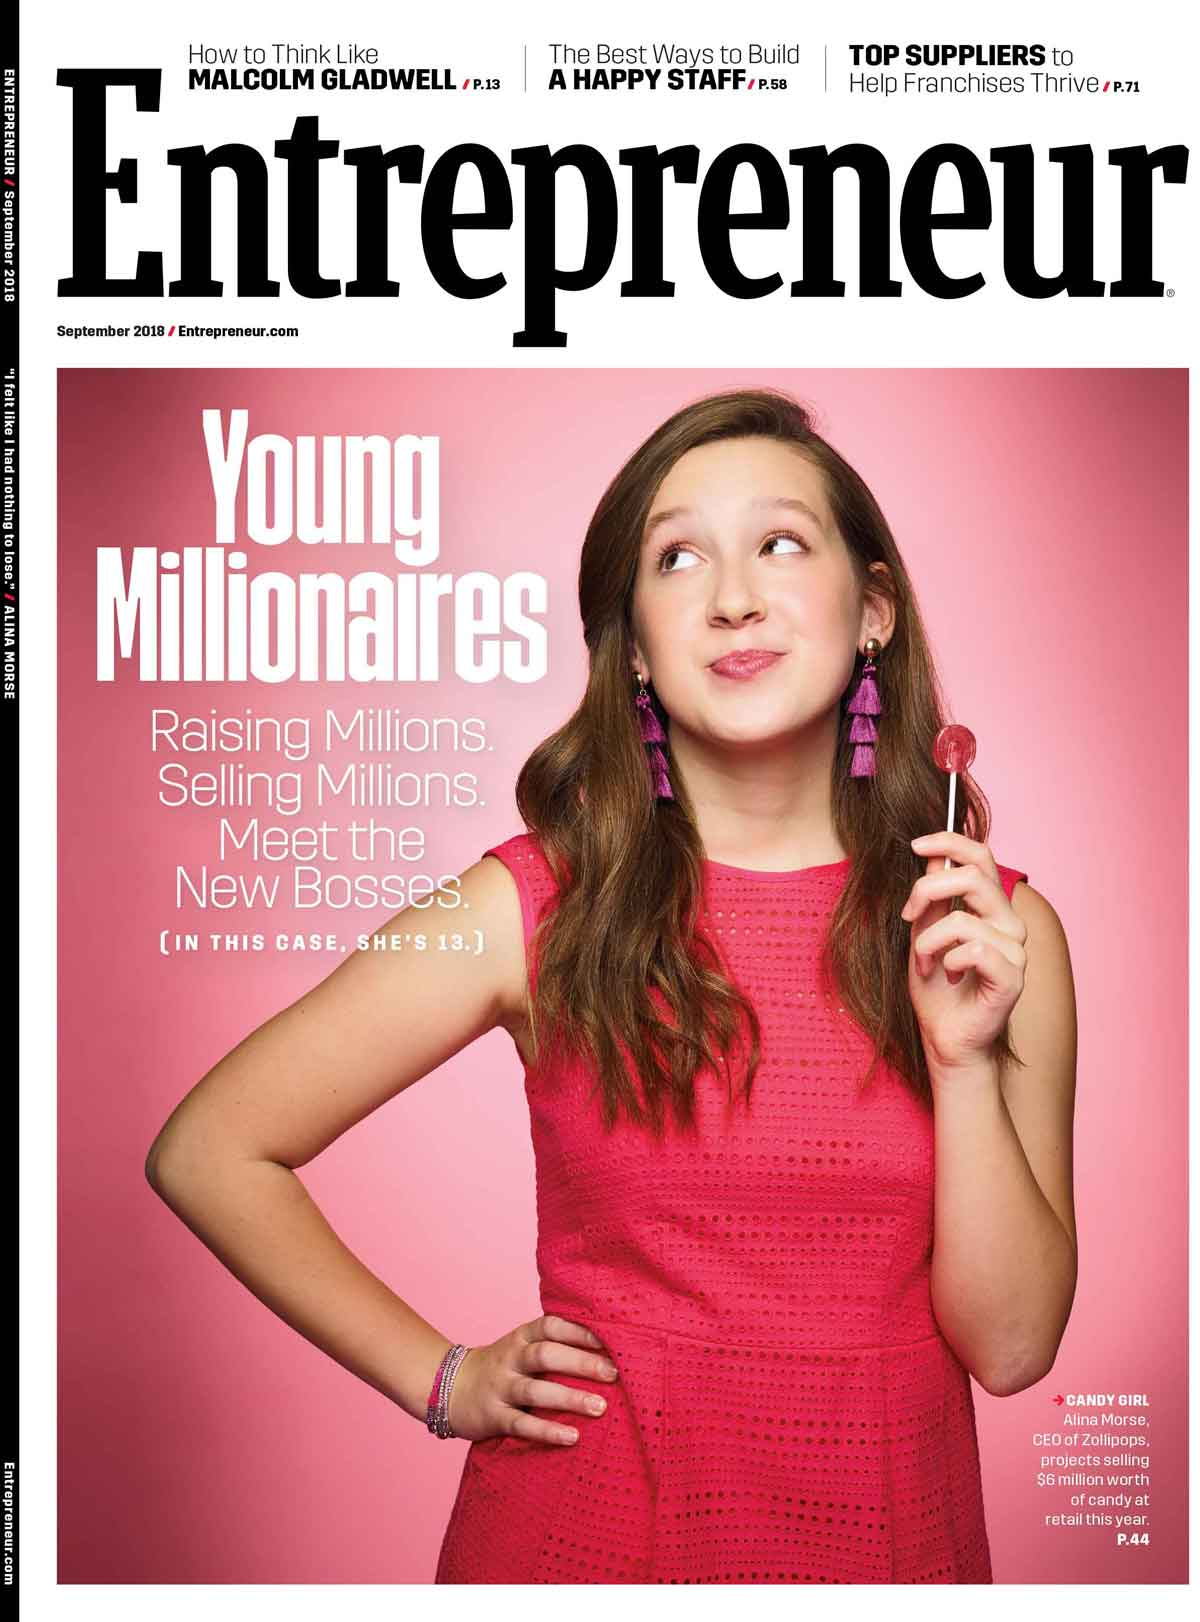 Alina Morse CEO Zolli Candy on the cover of Entrepreneur Magazine September 2018